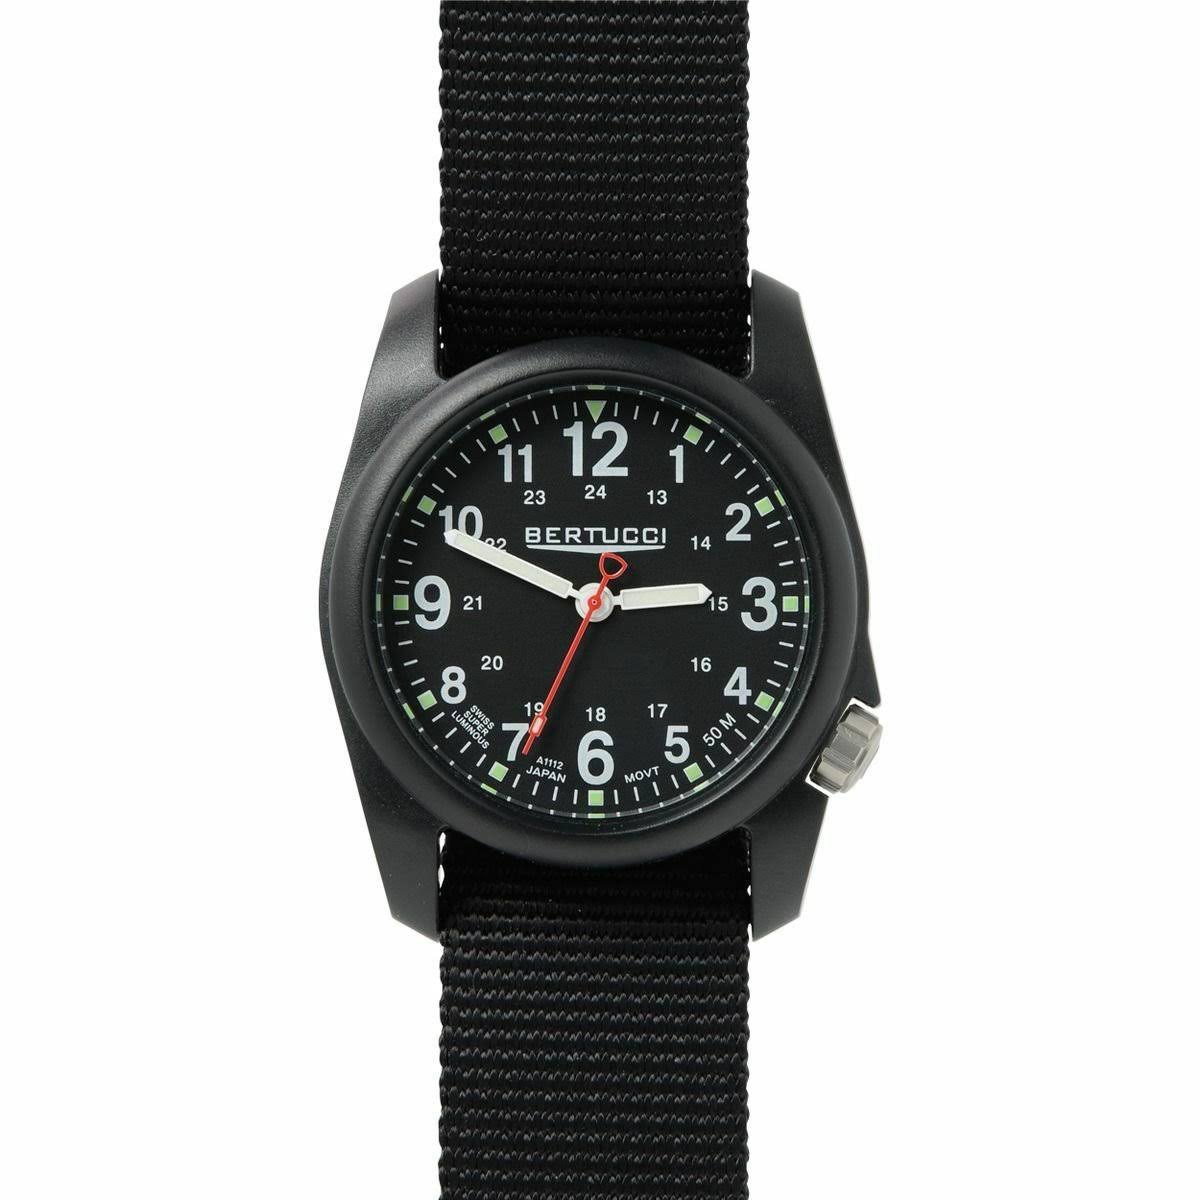 Bertucci DX3 Field Watch | Black/Black